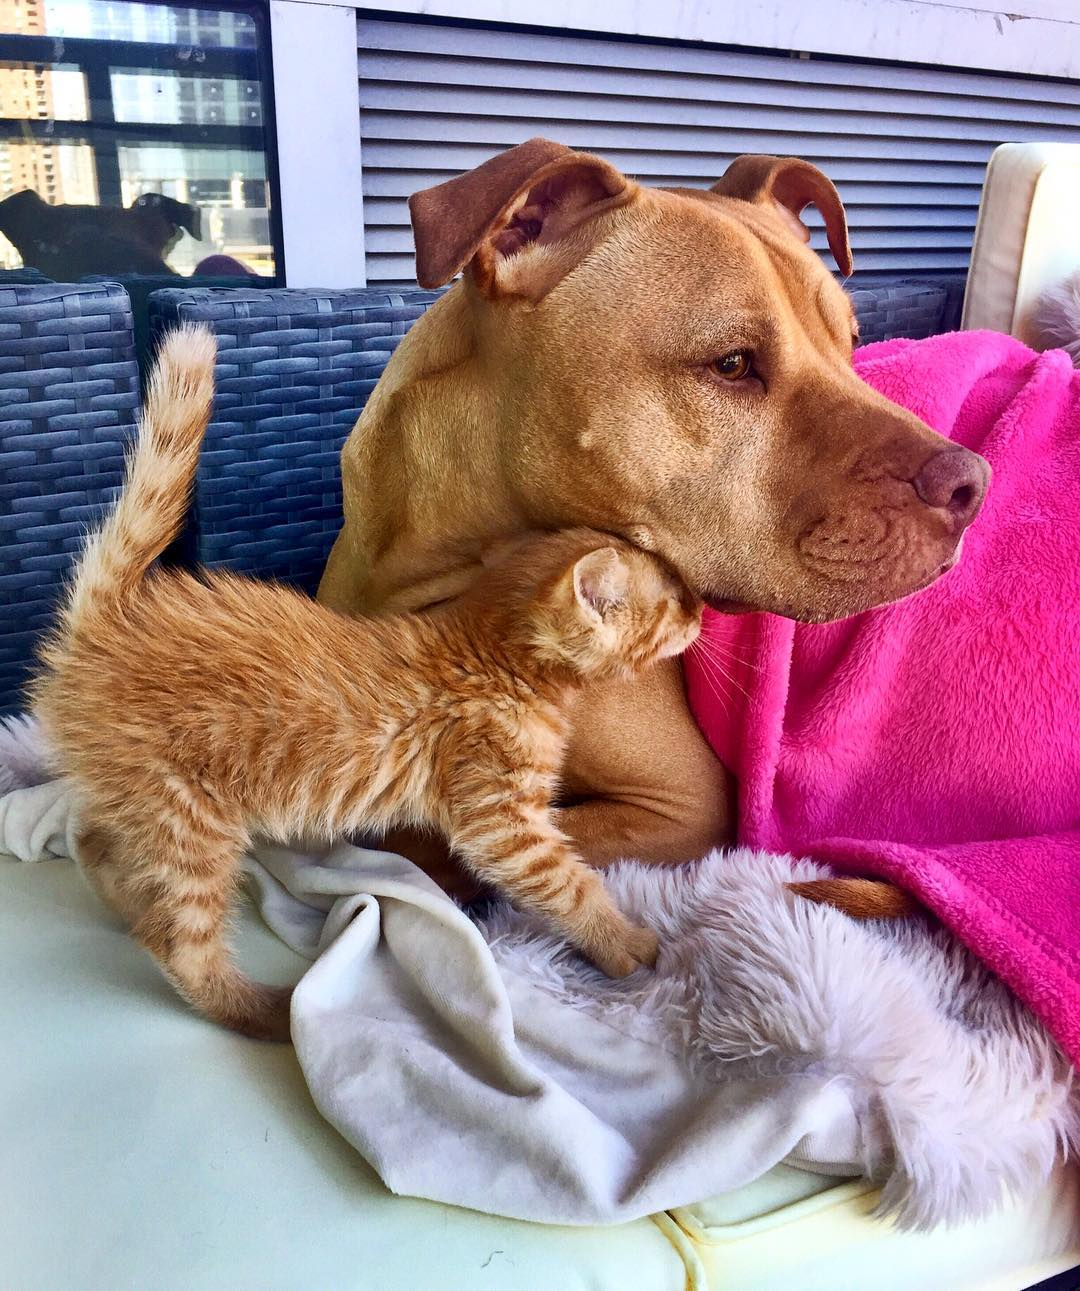 https://www.thedodo.com/rescue-pit-bull-adopted-kitten-1742584748.html